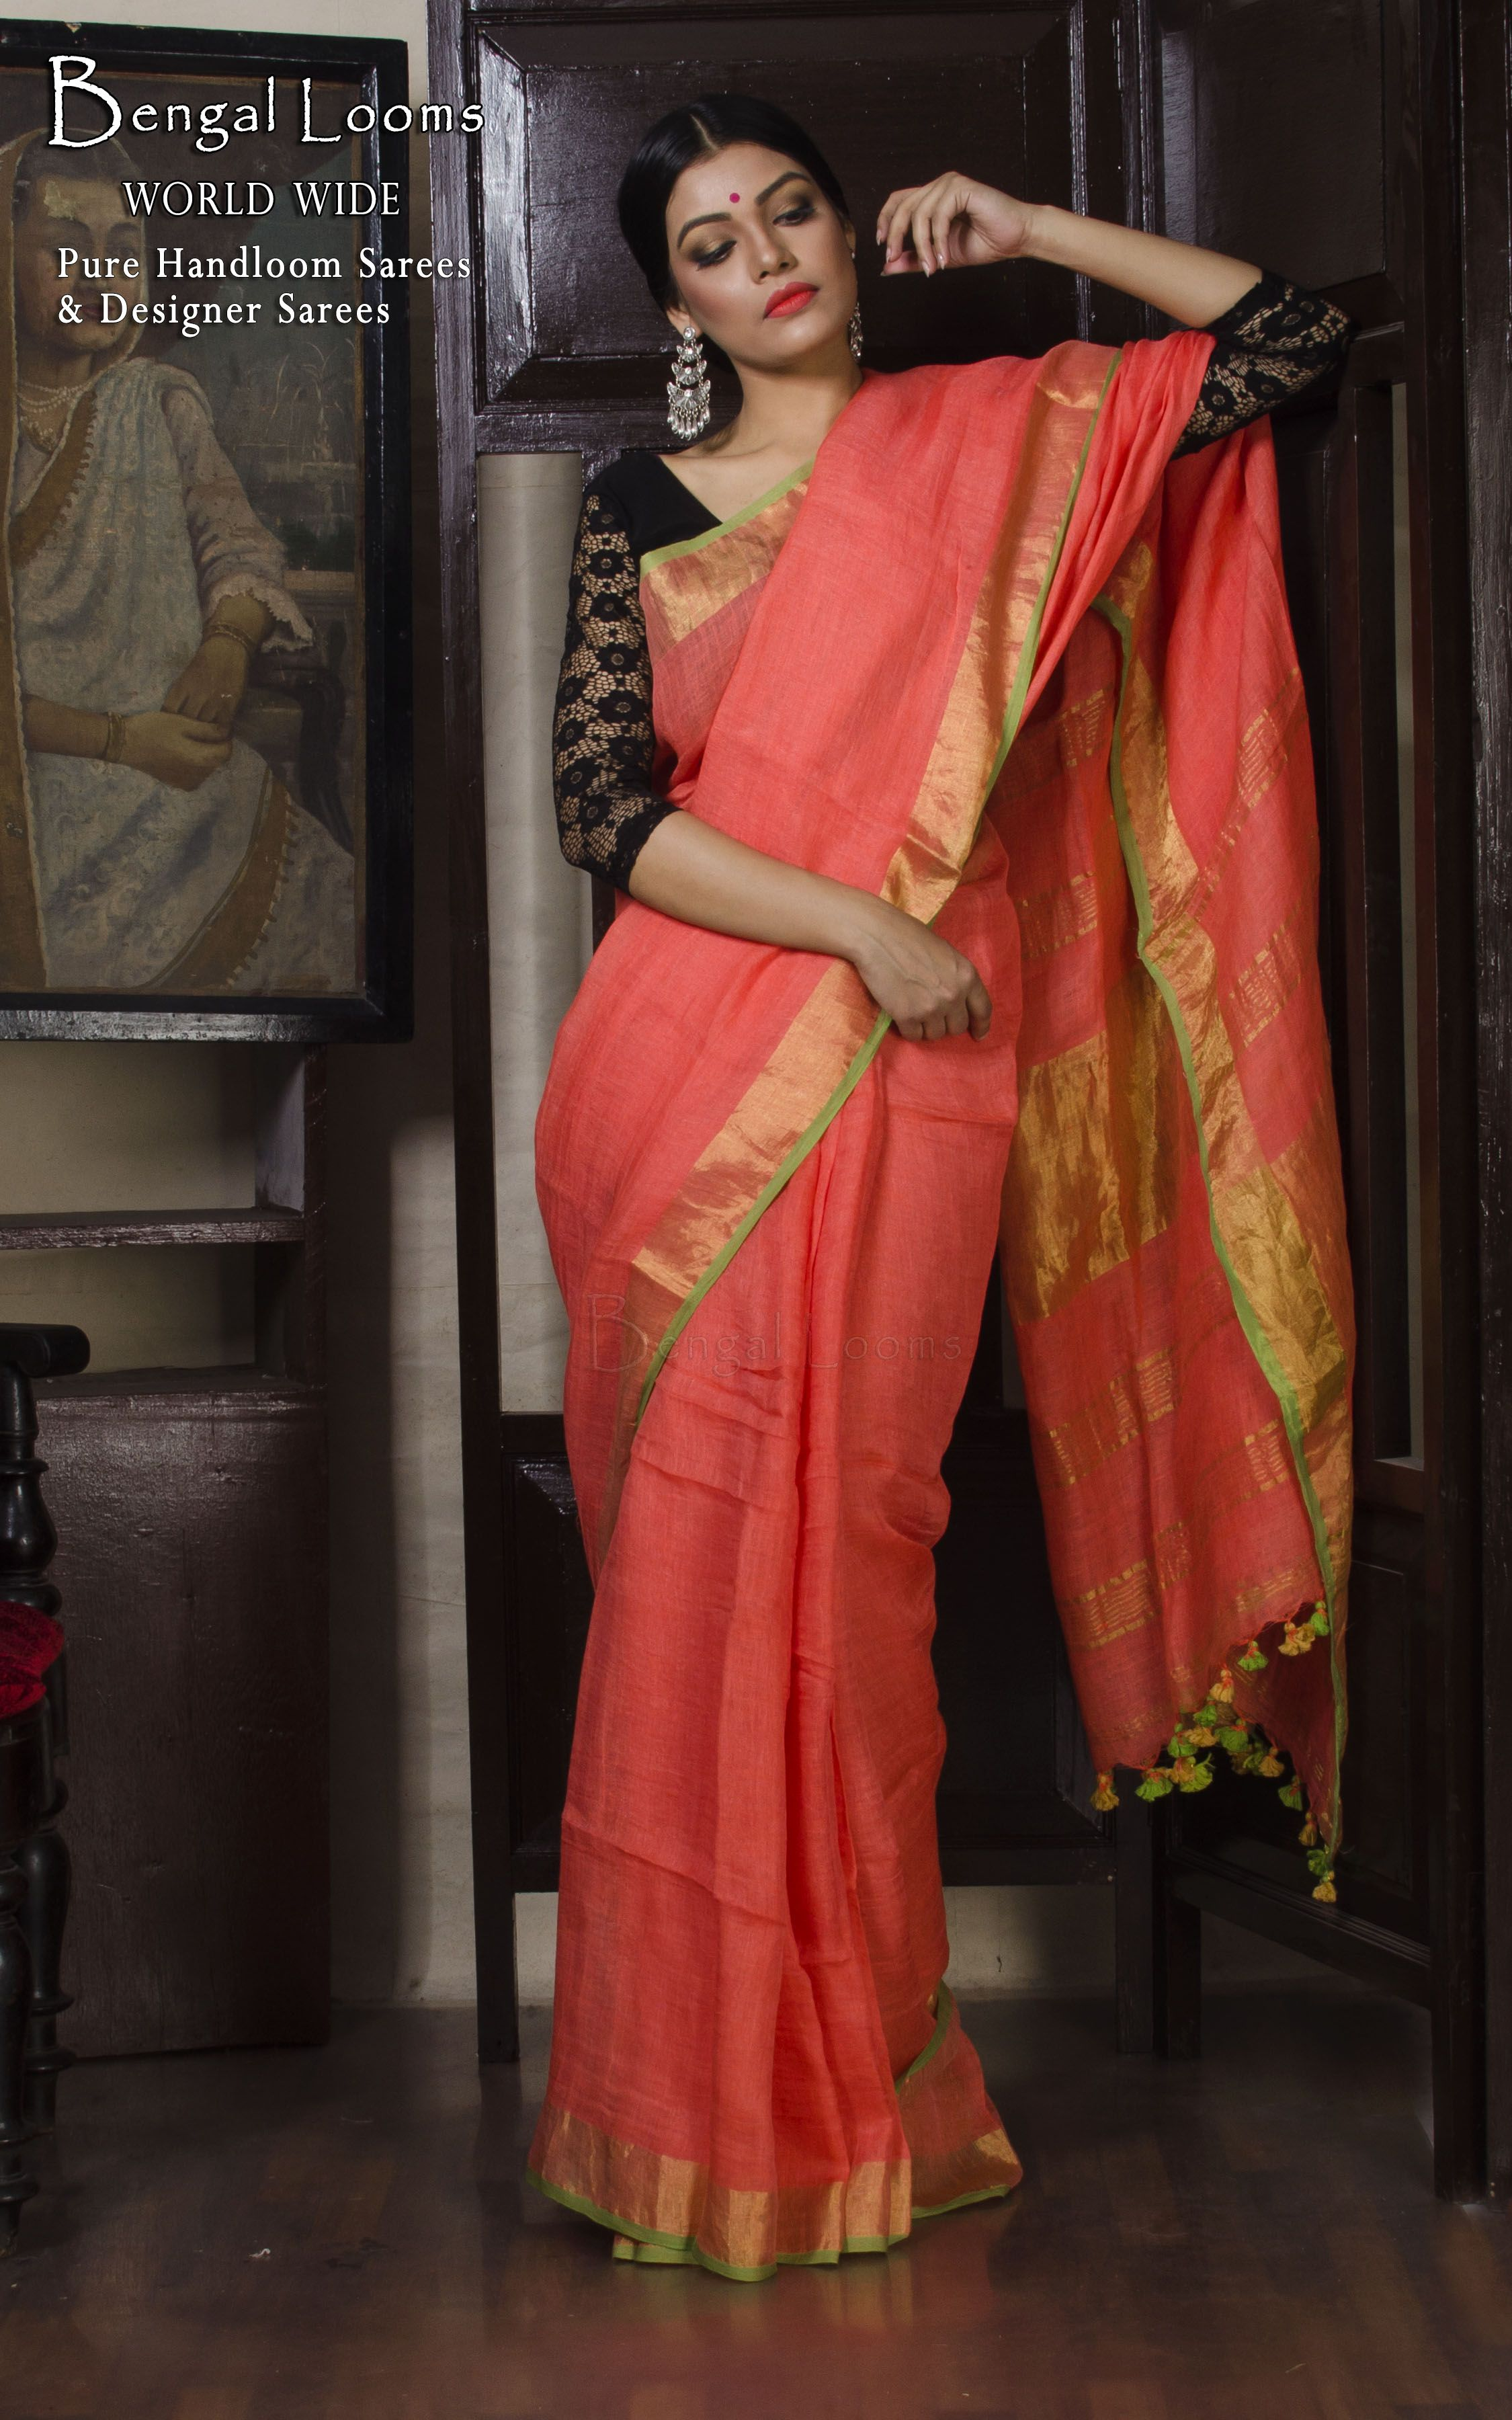 008137c0cfc00 Linen Saree with Antique Gold Zari Border in Peach and Green